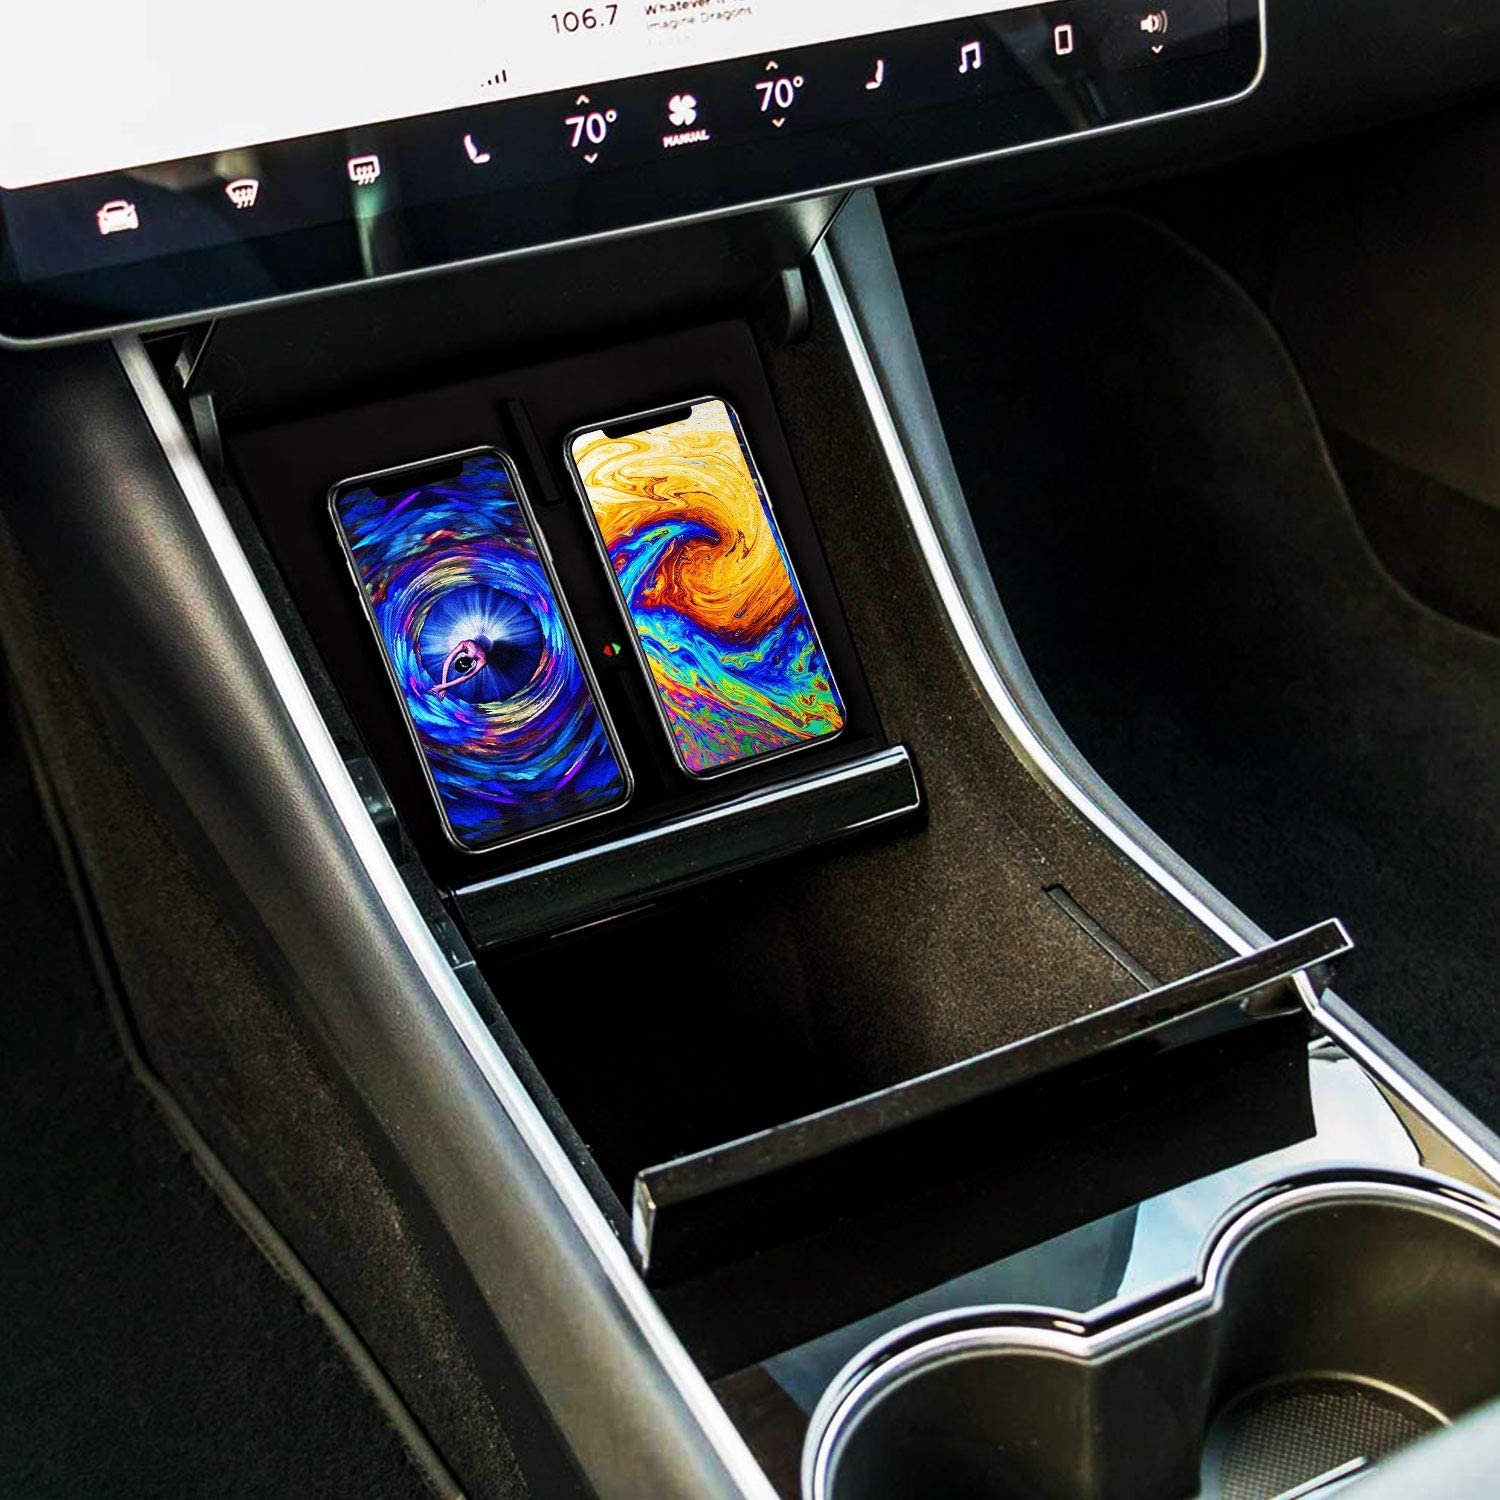 Model 3 Center Console Wireless Charging Pad Dual Phones Wireless Charging Dock for Tesla Model 3 Latest Version NYZ Tesla Model 3 Wireless Charger